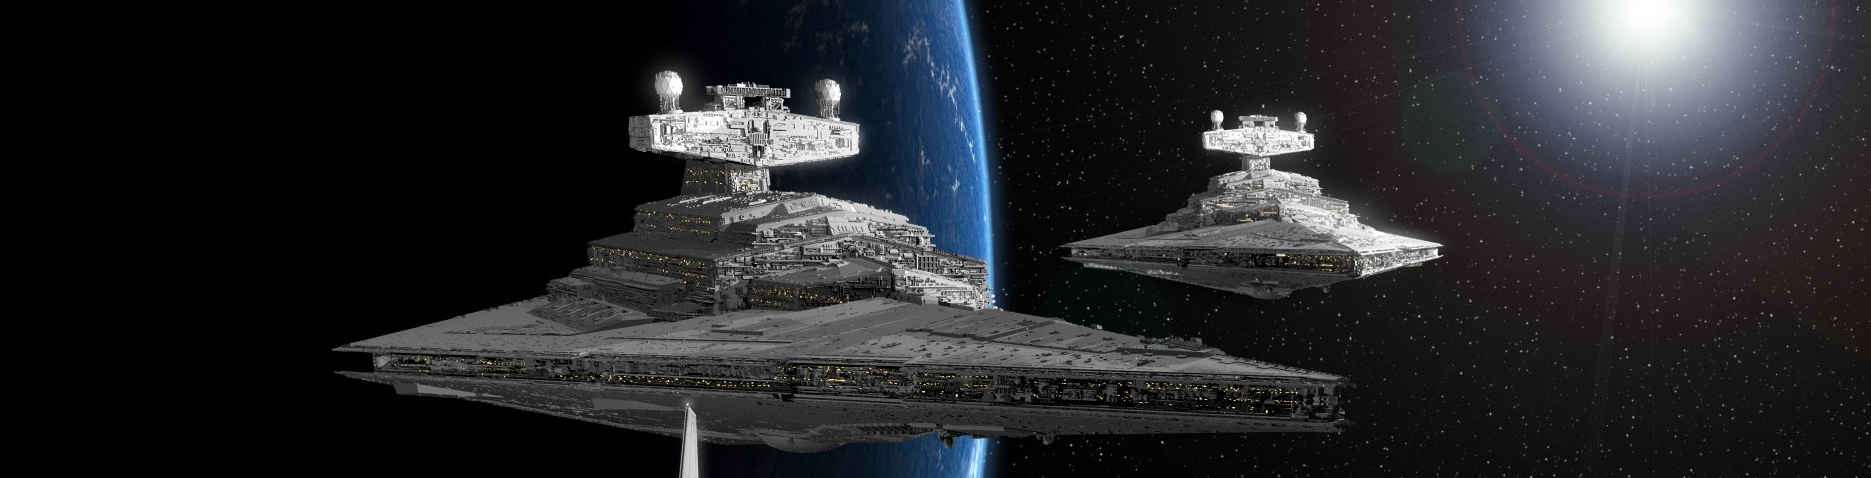 Star wars   starships 1920x1200